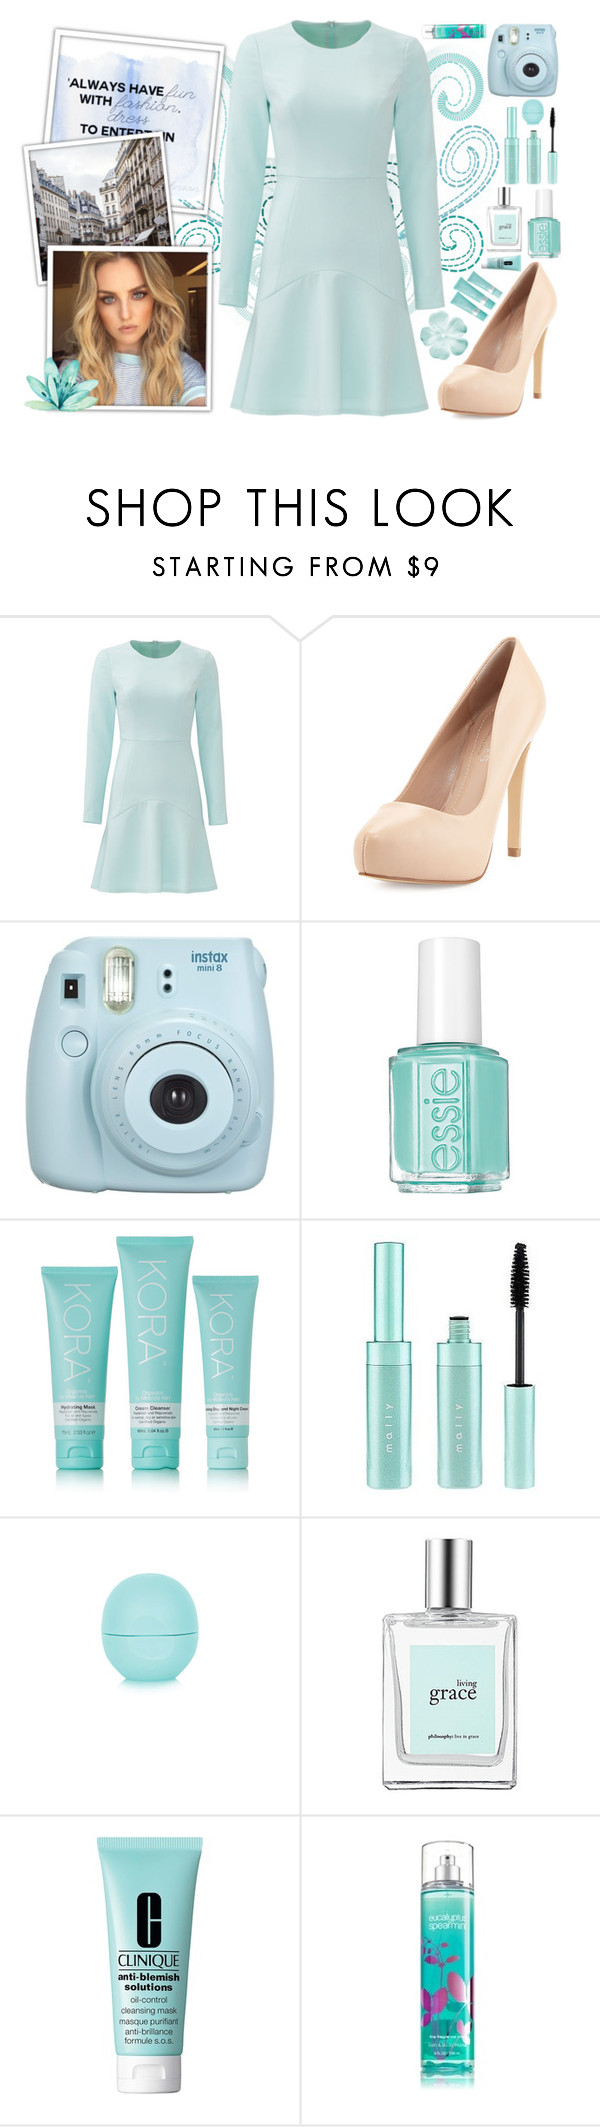 """Always Have Fun With Fashion"" by angelstylee ❤ liked on Polyvore featuring Shoshanna, Charles by Charles David, Fujifilm, Essie, Mally, Topshop, philosophy and Clinique"